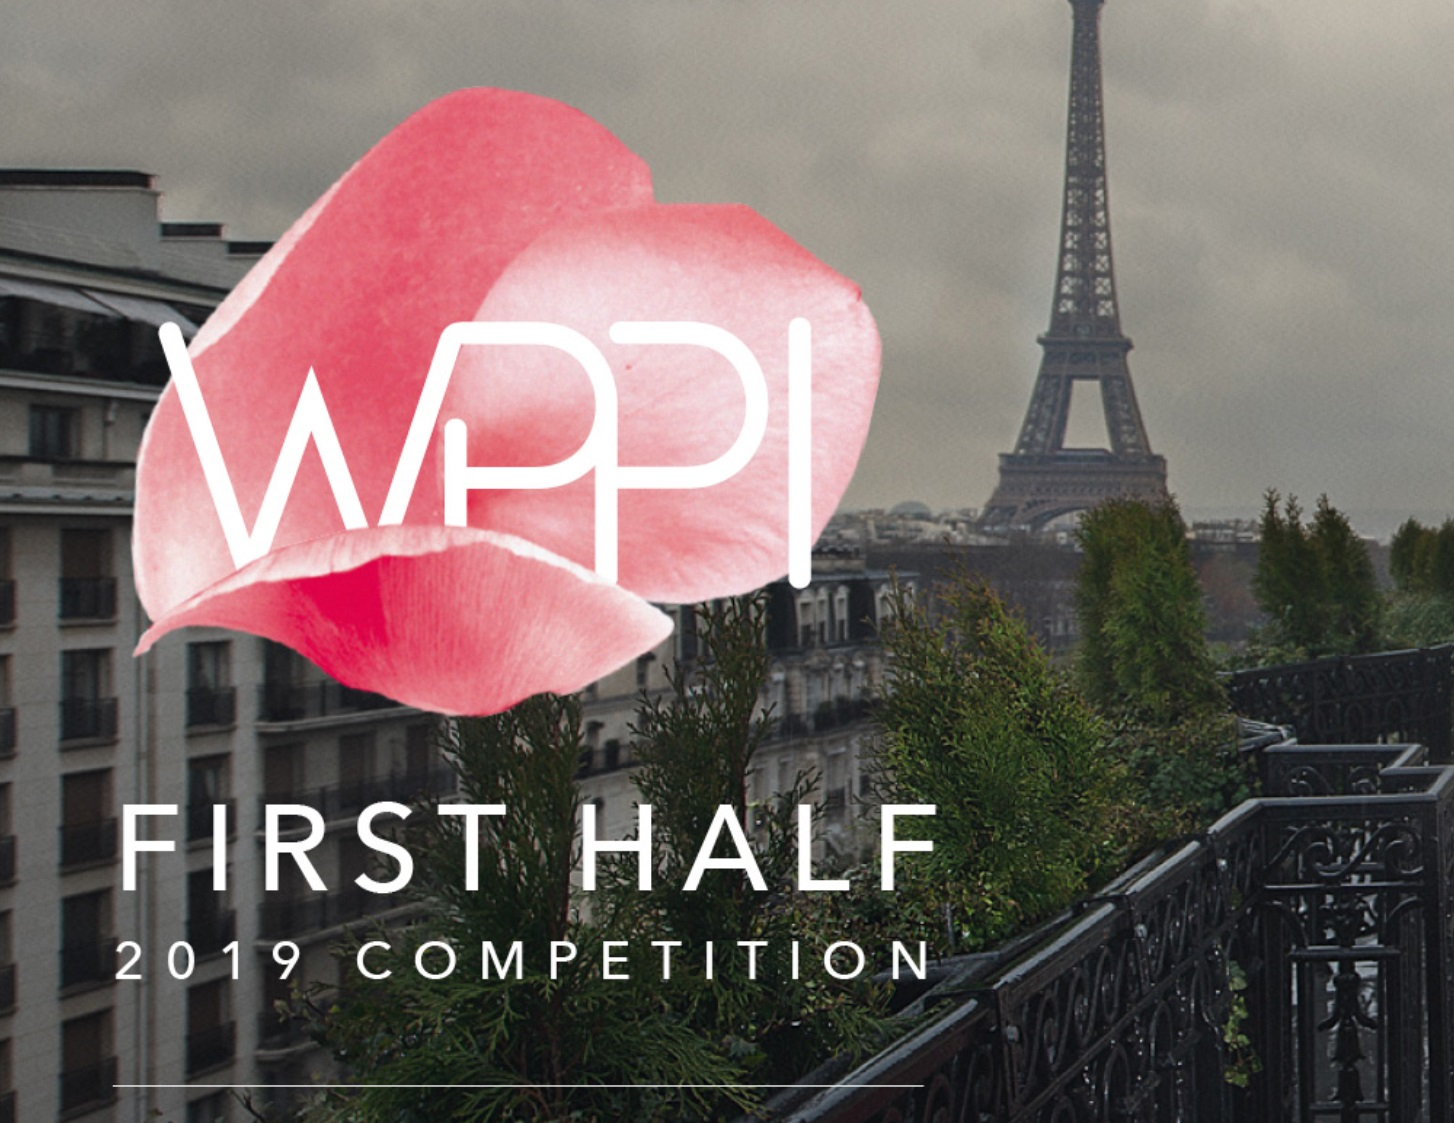 WPPI First Half competition 2019 - logo